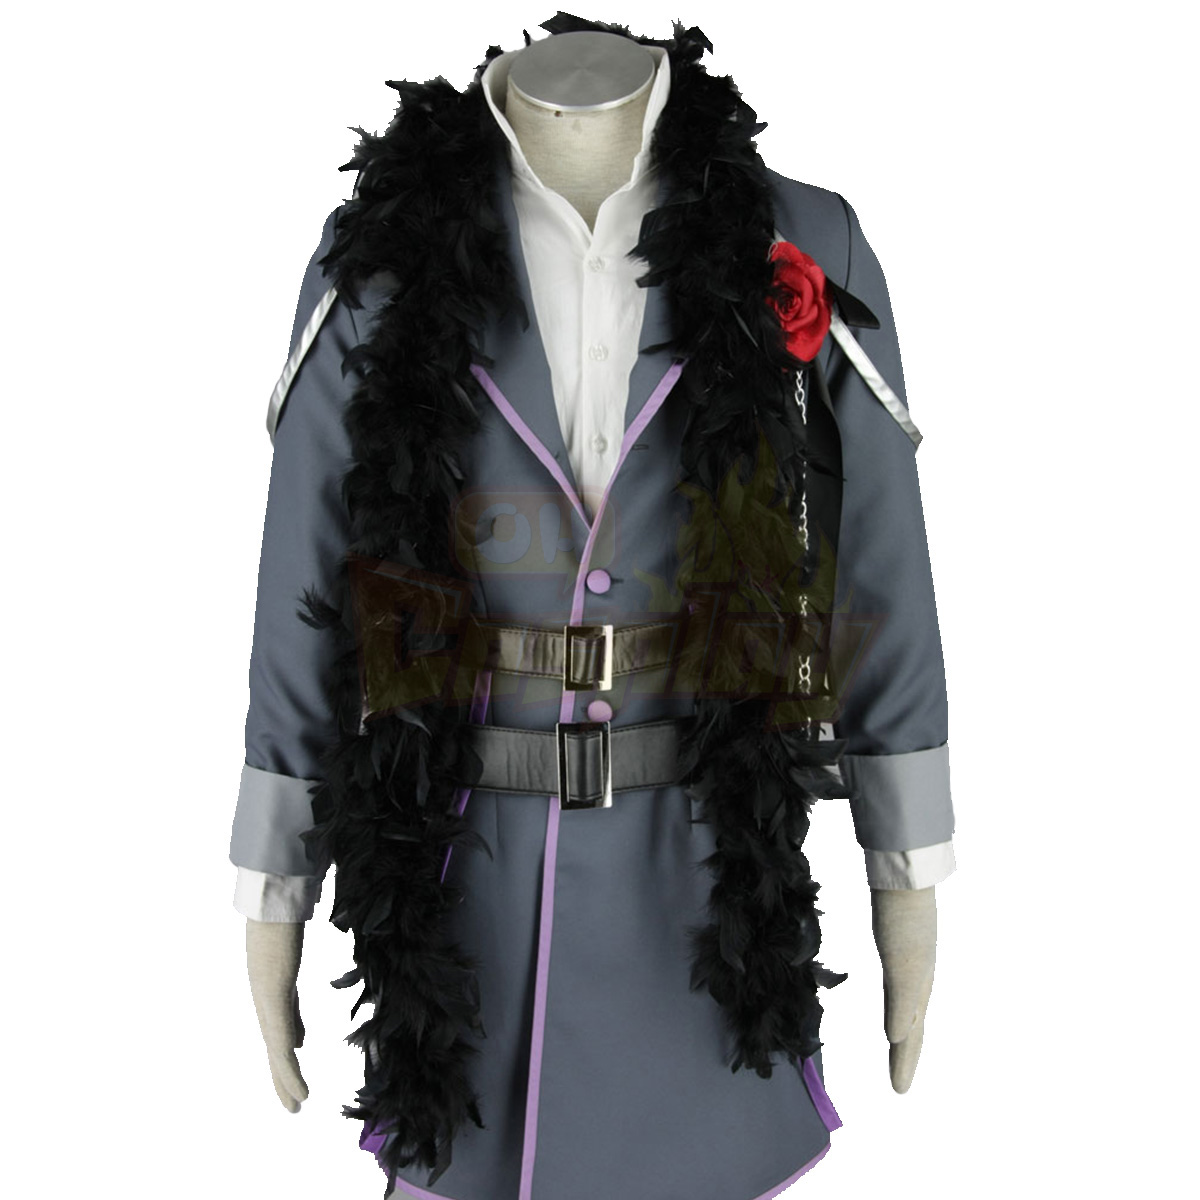 Deluxe Vocaloid Gackpoid 2ND Cosplay Costumes